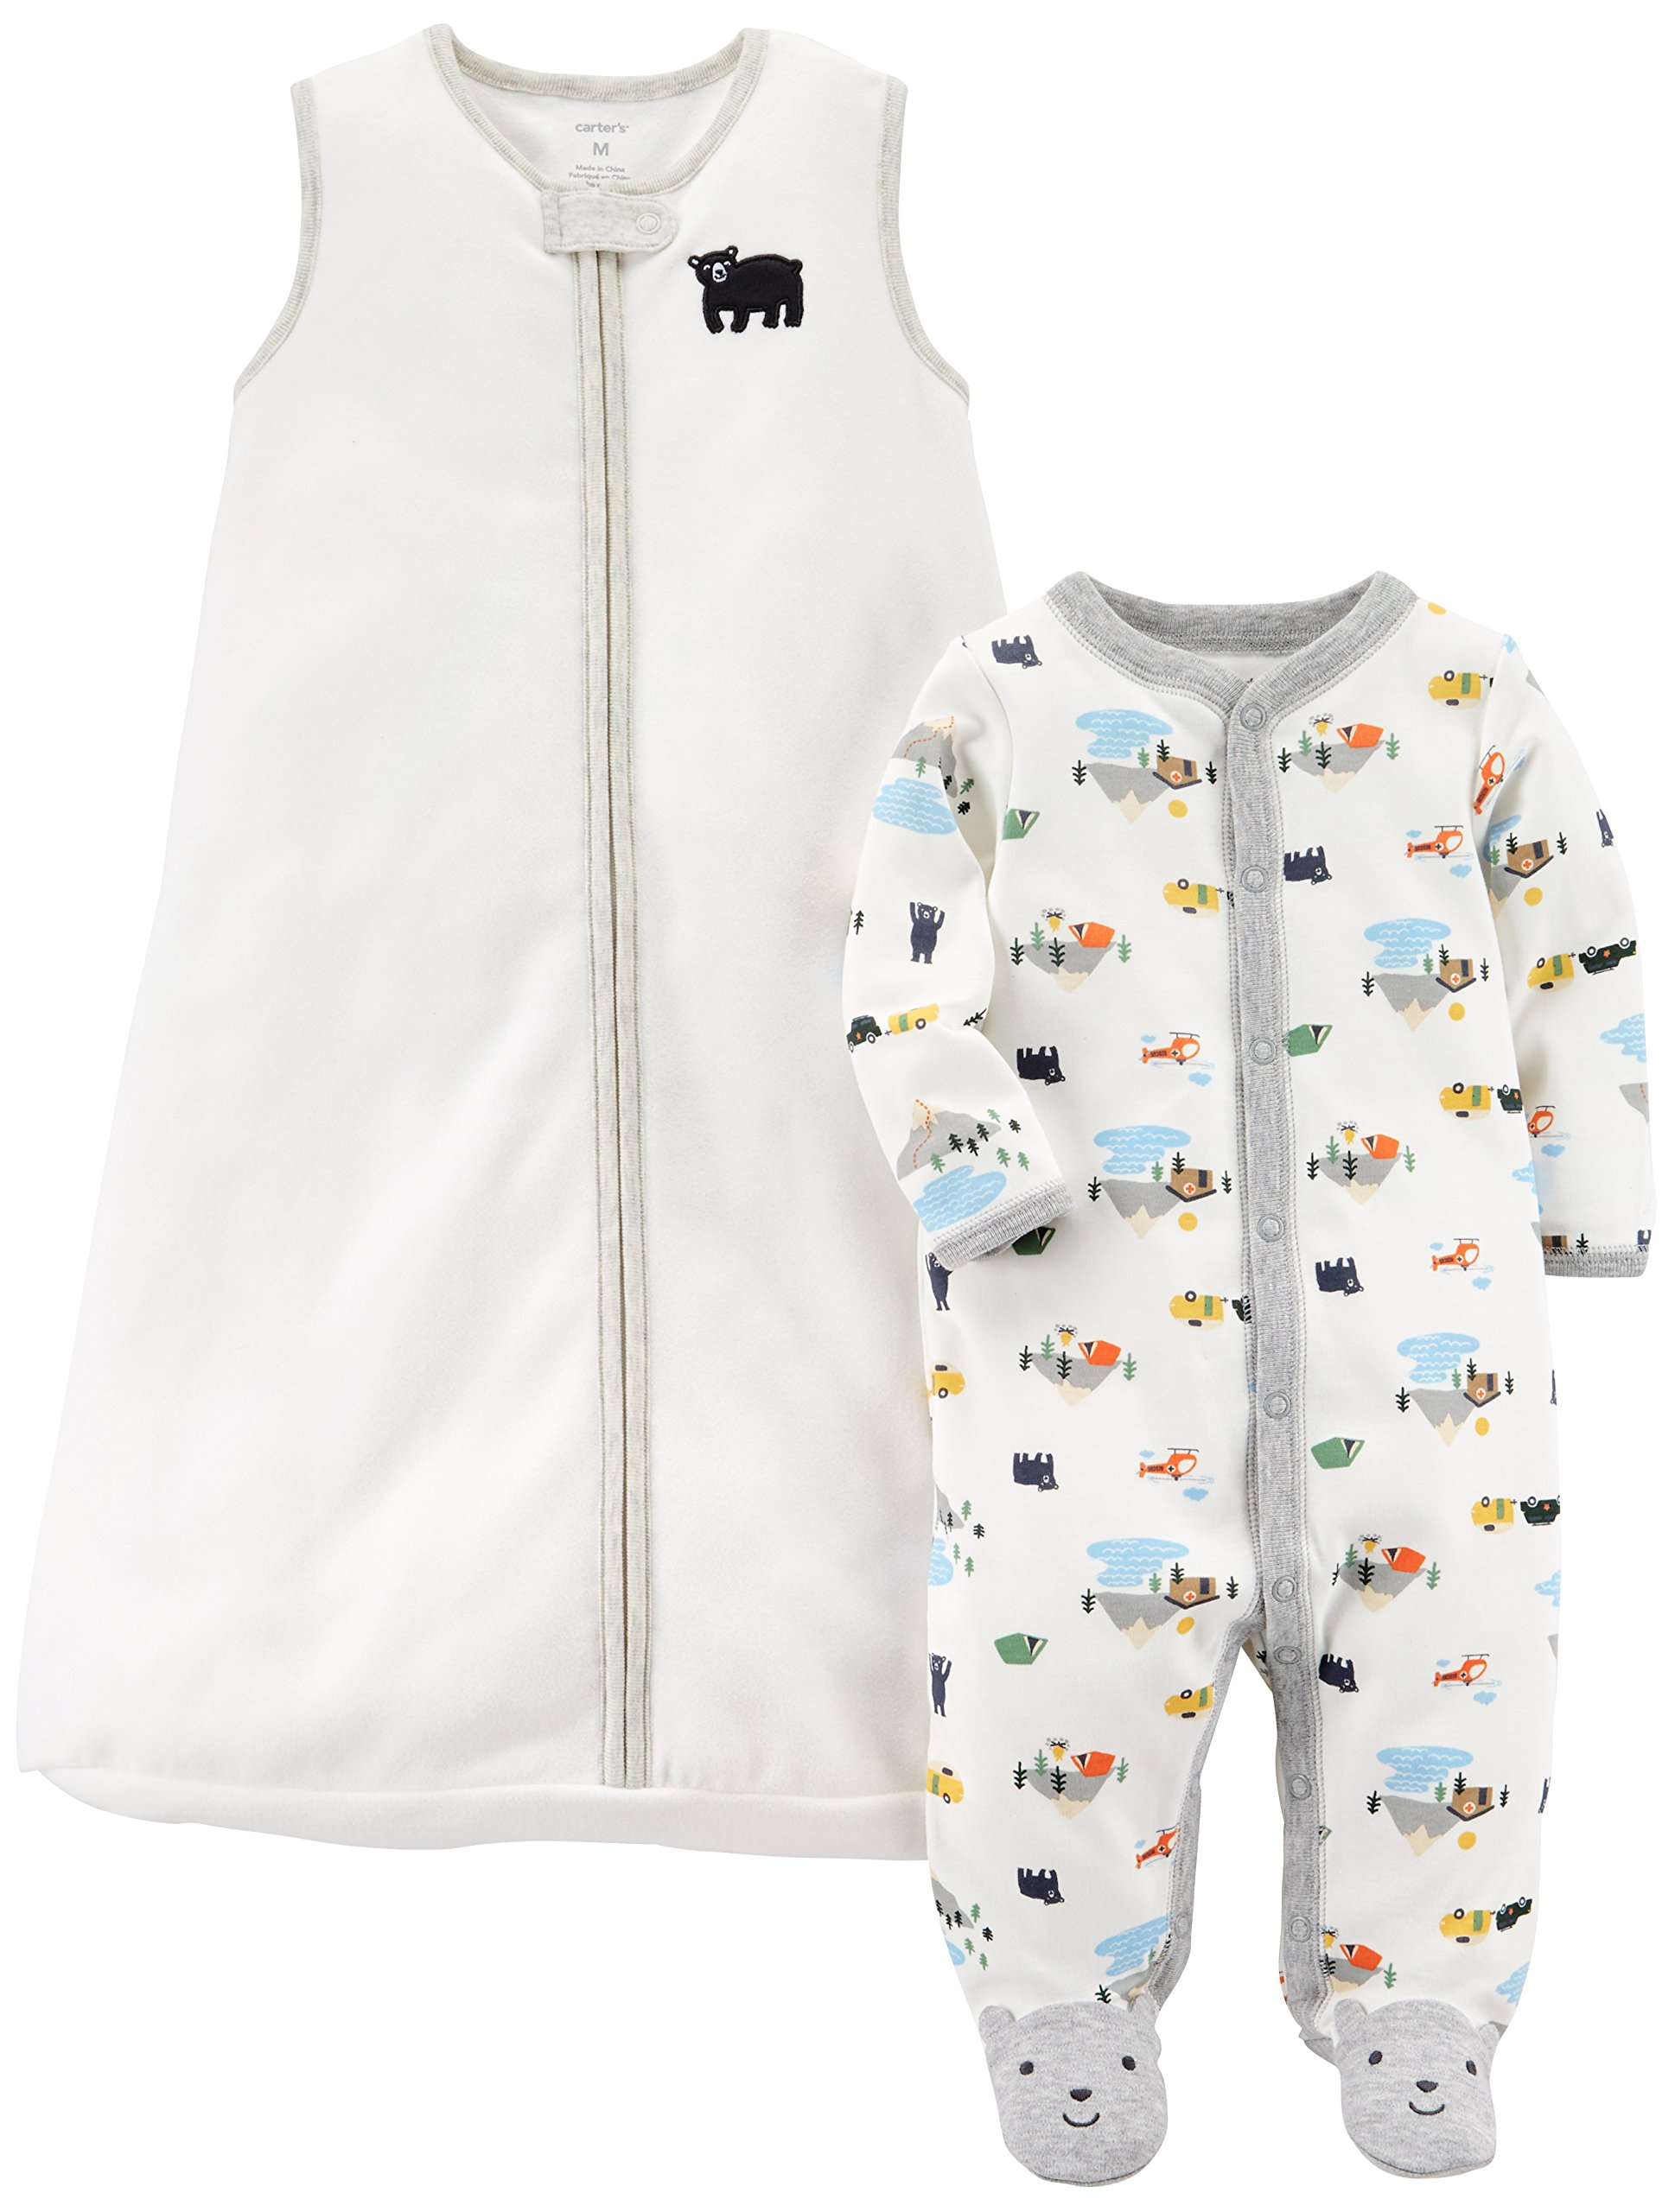 Carter's Baby Boys' 2-Pack Fleece Sleep and Play with Sleepbag, Bear/White, 9 Months